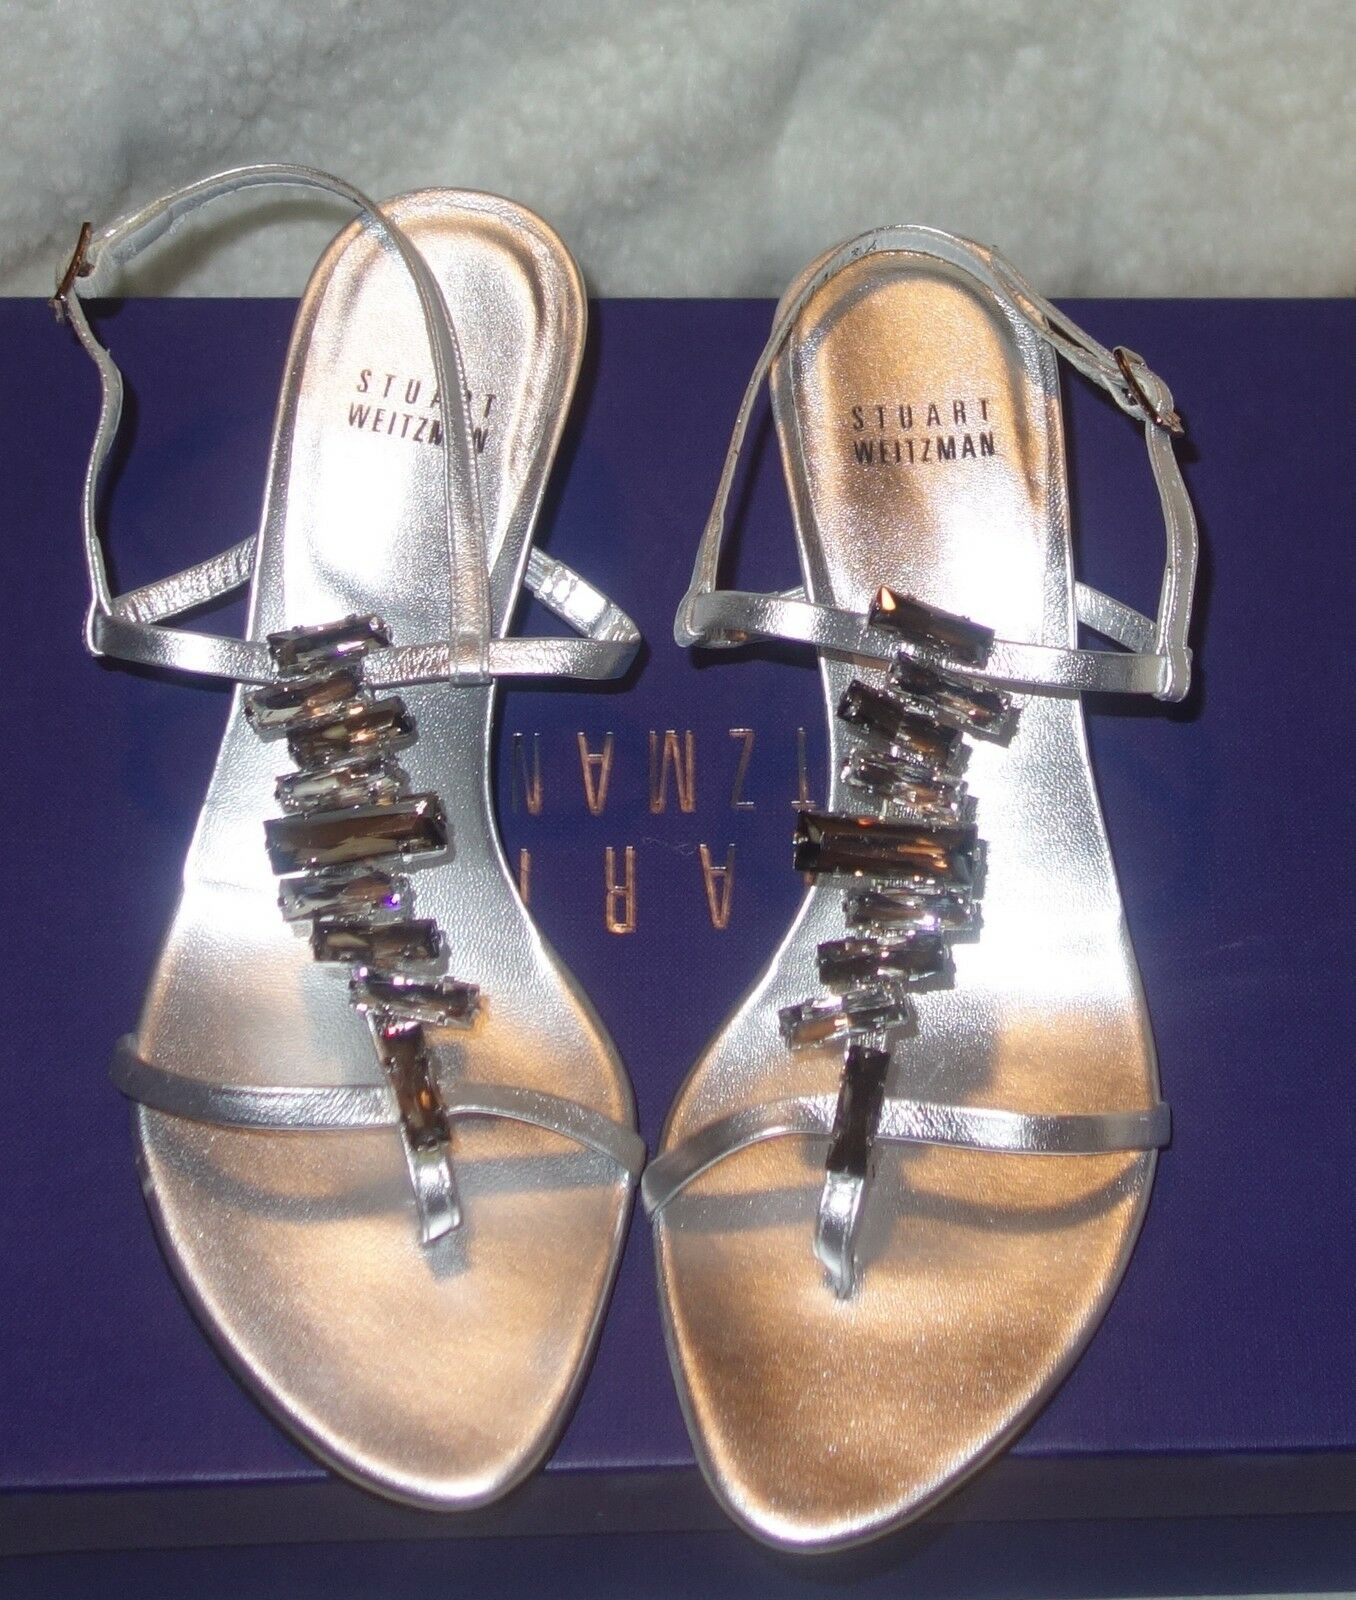 Stuart Weitzman Metallic Leather sz Adorn Jeweled Sandals silver sz Leather 36 US SZ 5.5 79be18